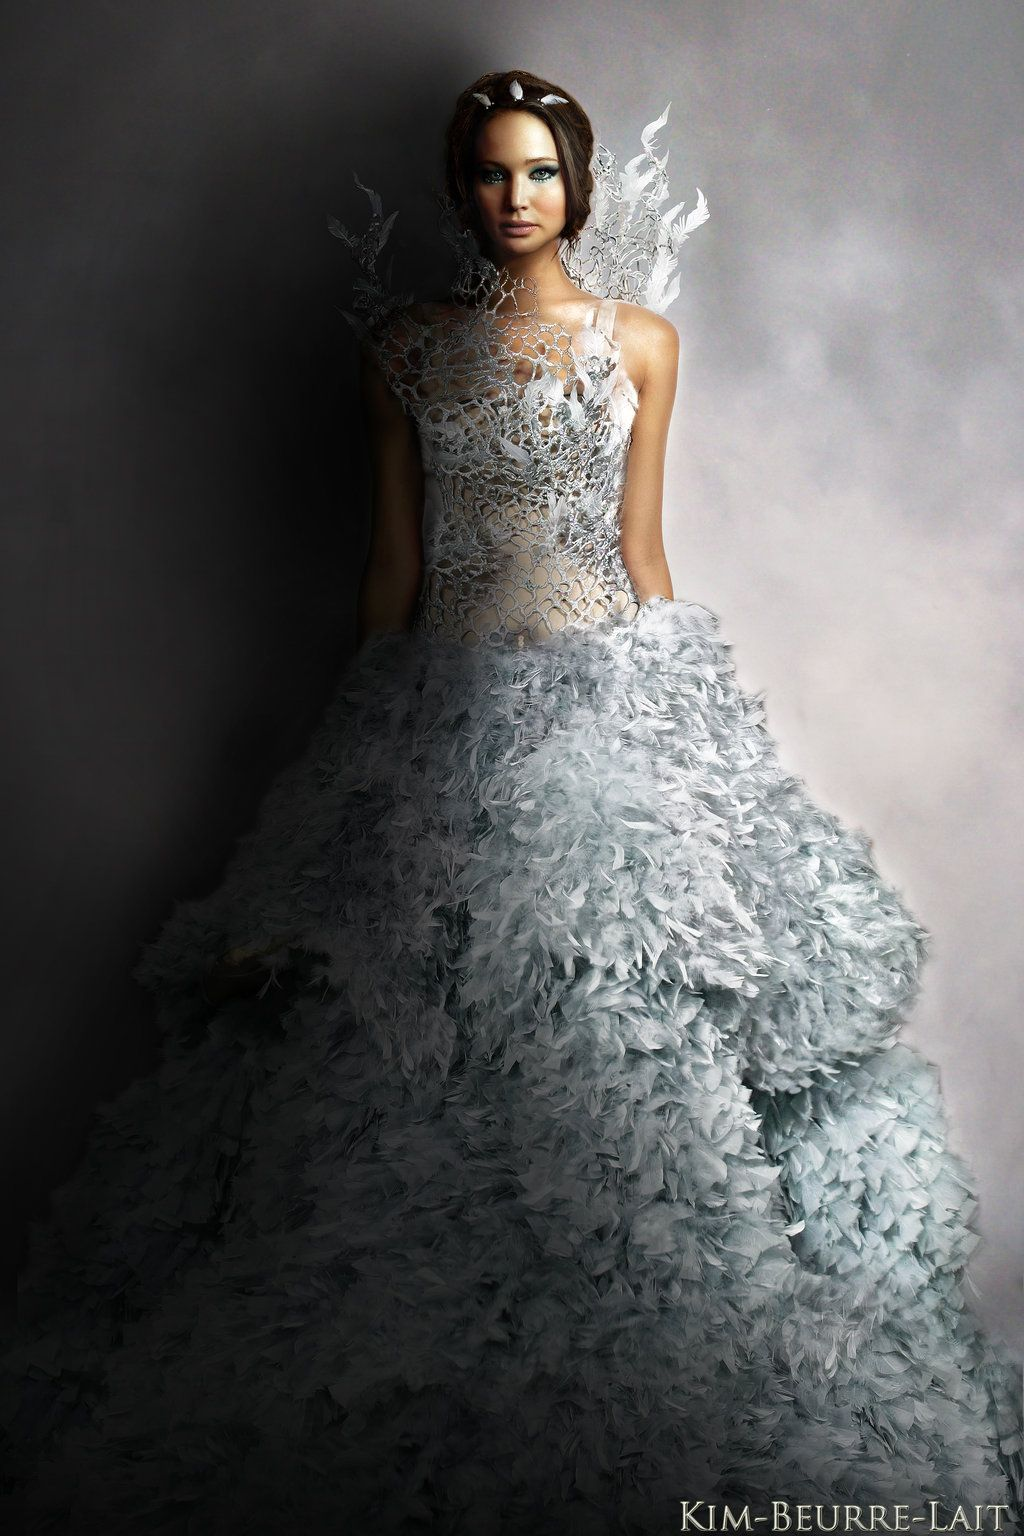 The hunger games catching fire katniss wedding dress designer - The Hunger Games Catching Fire Impeccable Dress